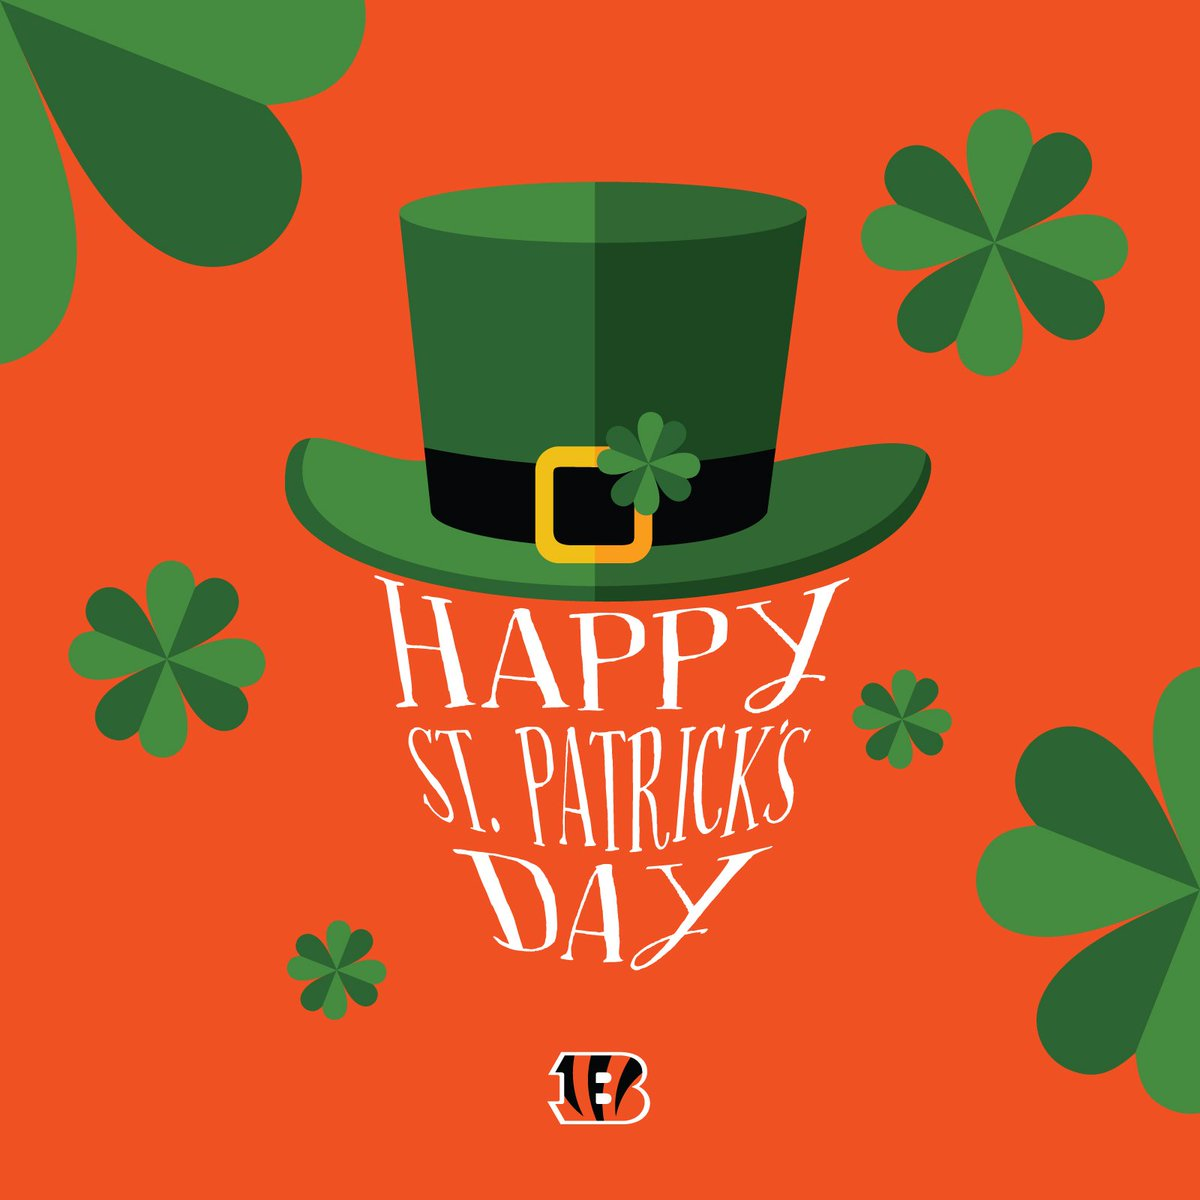 Cincinnati Bengals On Twitter The Flag Of Ireland Is Green White And Orange We Can Dig It Have A Happy And Safe St Patrick S Day Who Dey Fans 900 x 675 jpeg 431 кб. cincinnati bengals on twitter the